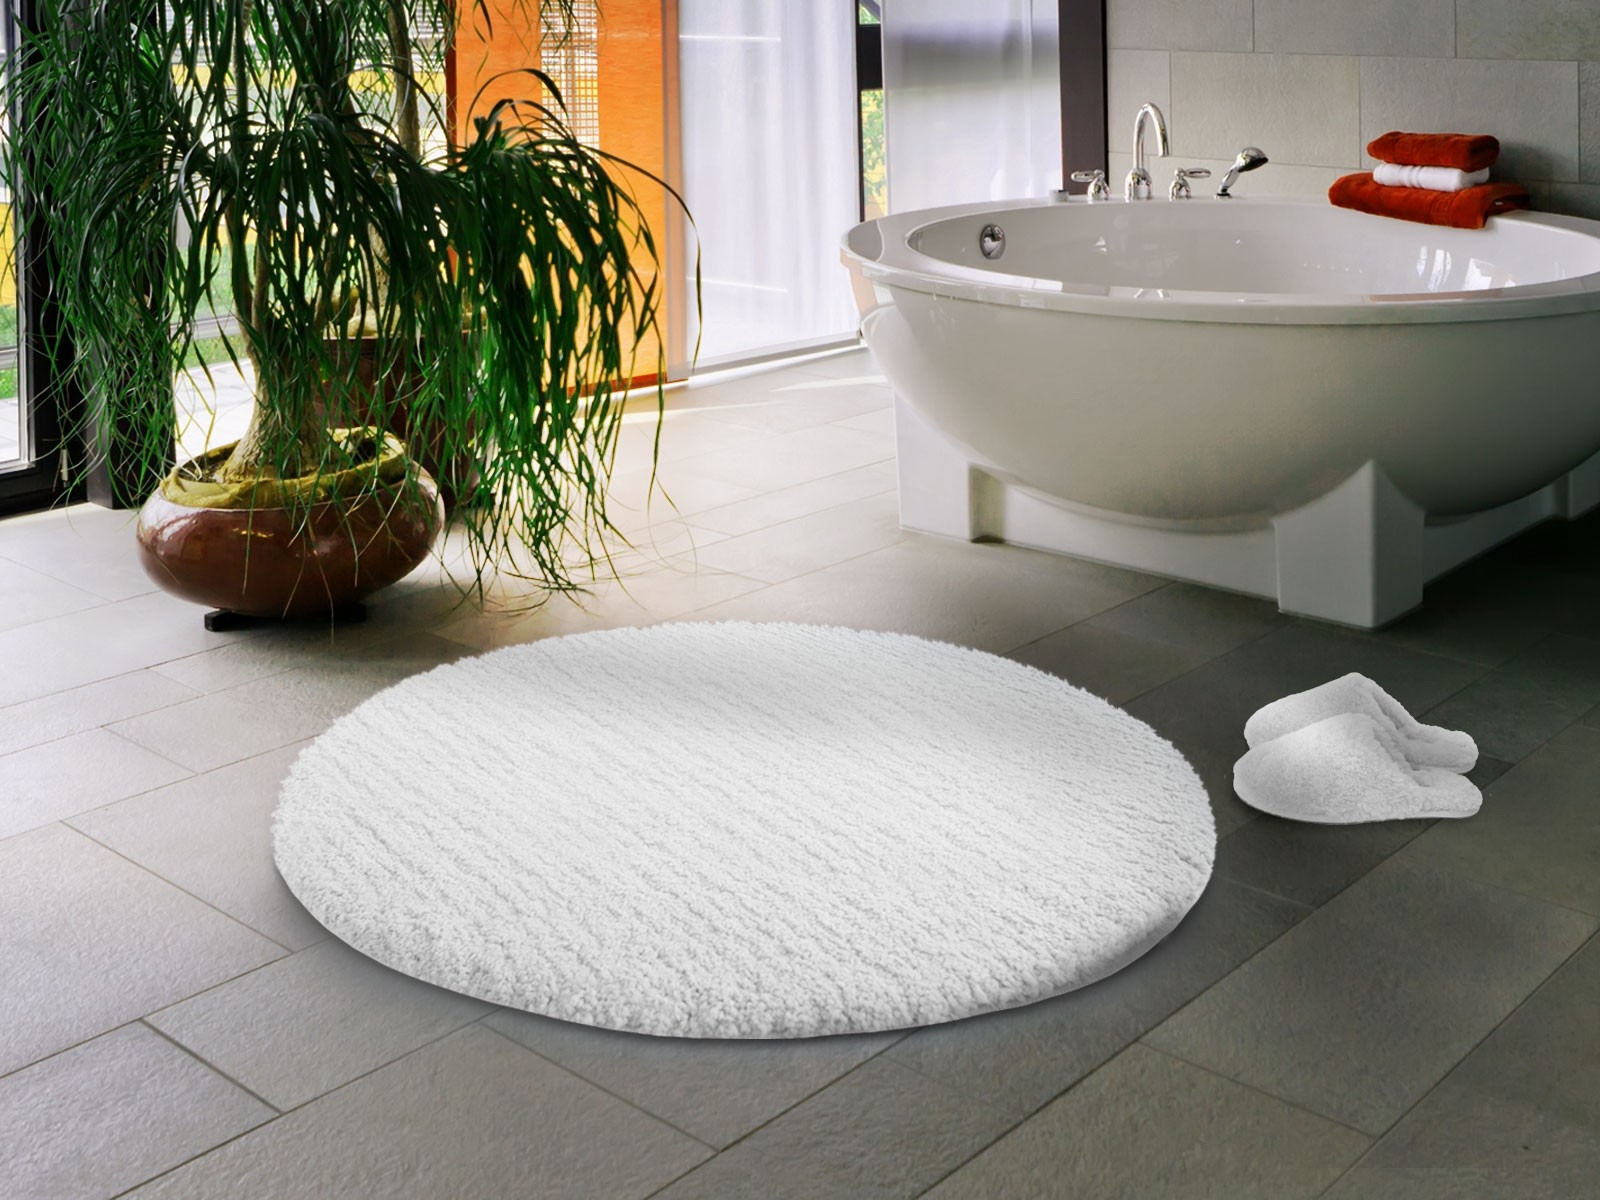 Compare Extra Large Bath Mat